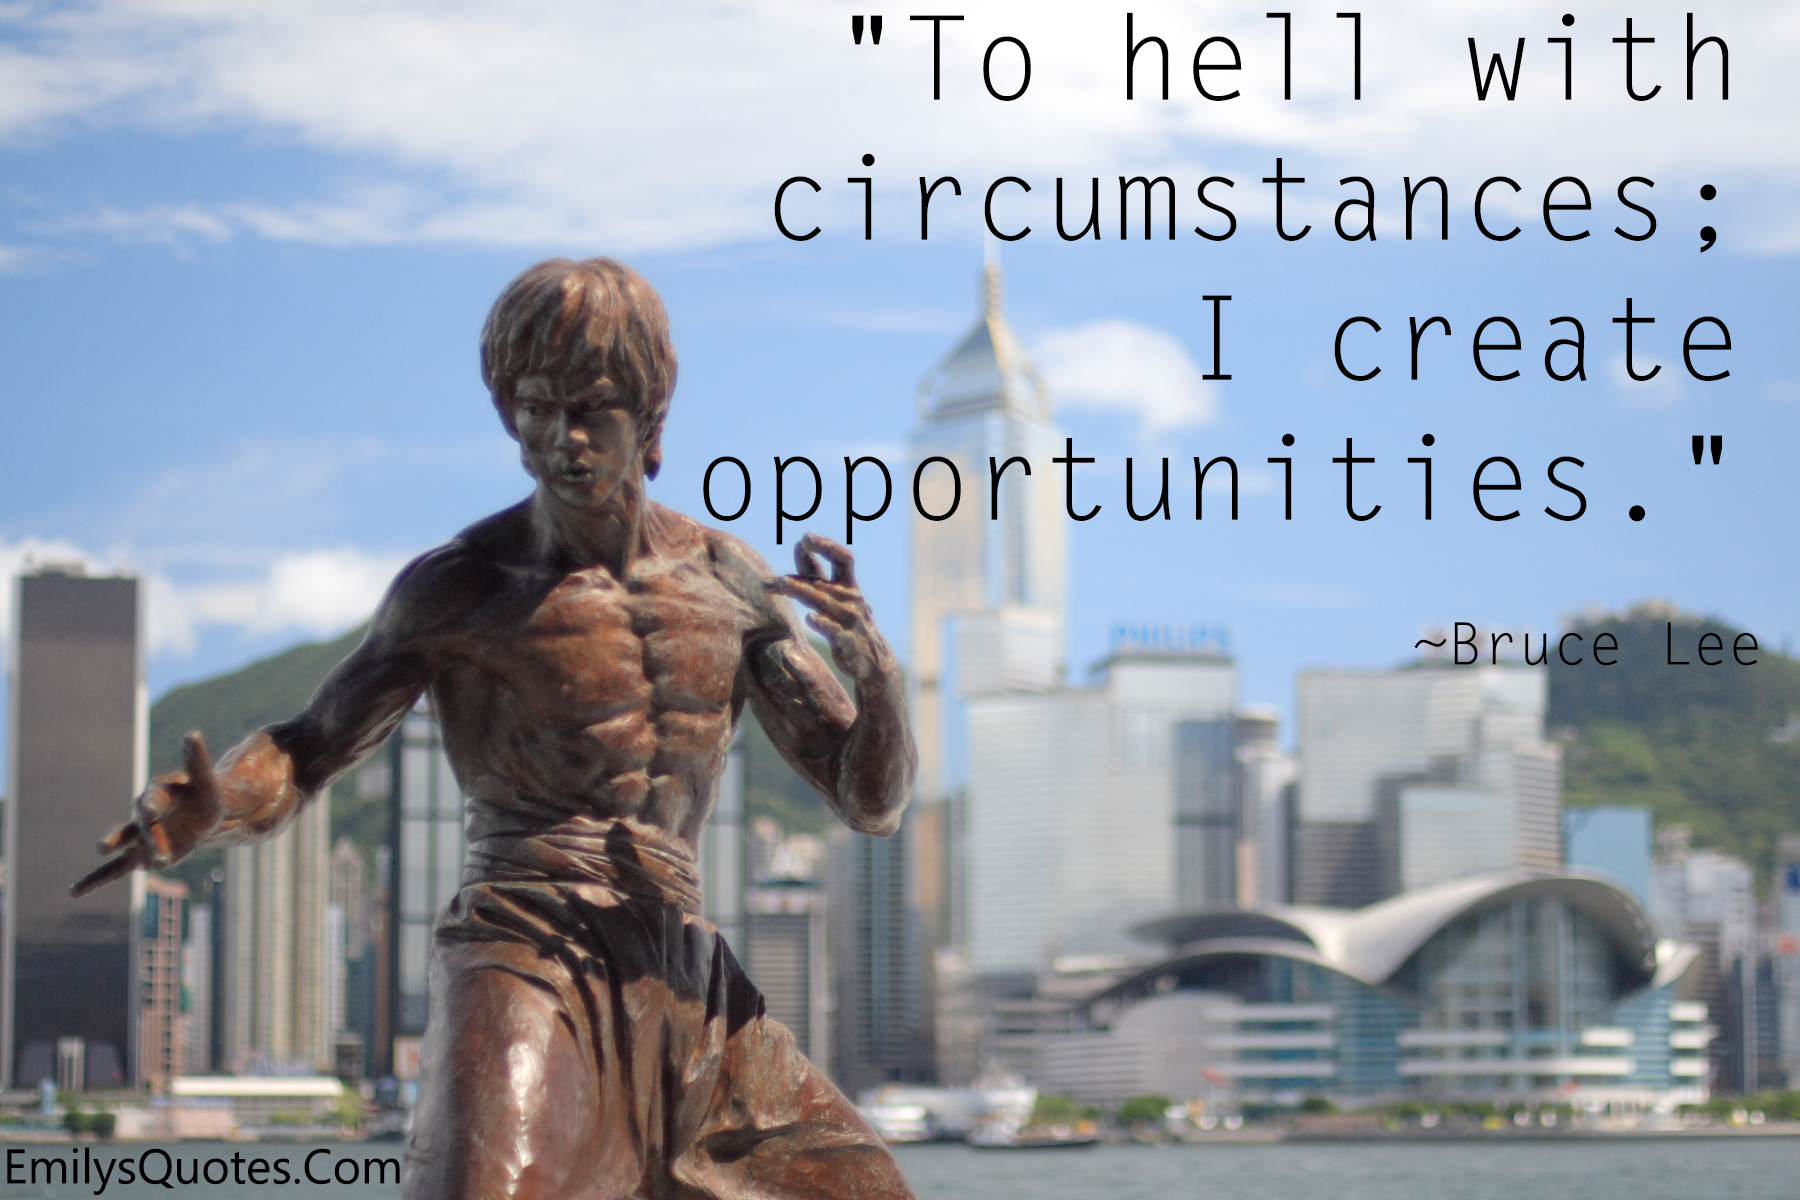 EmilysQuotes.Com - amazing, great, hell, Opportunities, Circumstances, Bruce Lee